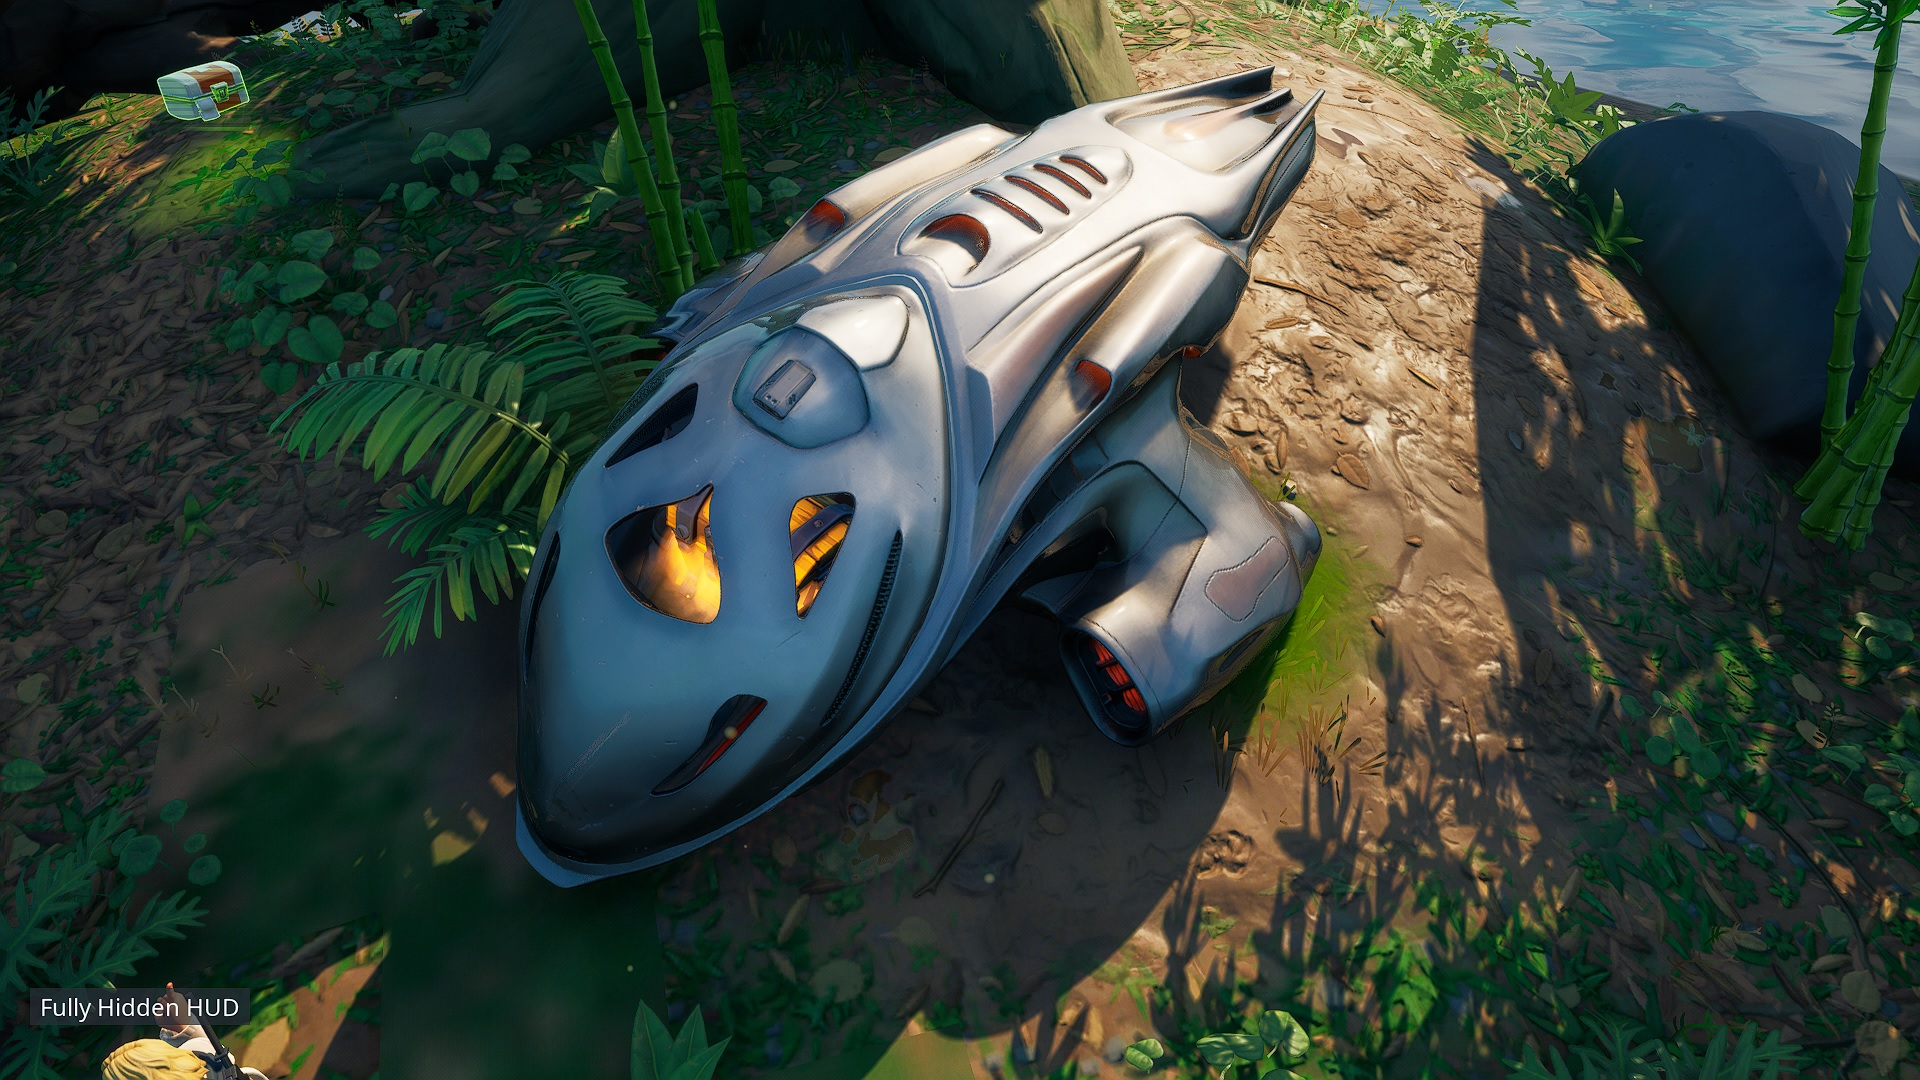 Where to find the mysterious pod in Fortnite